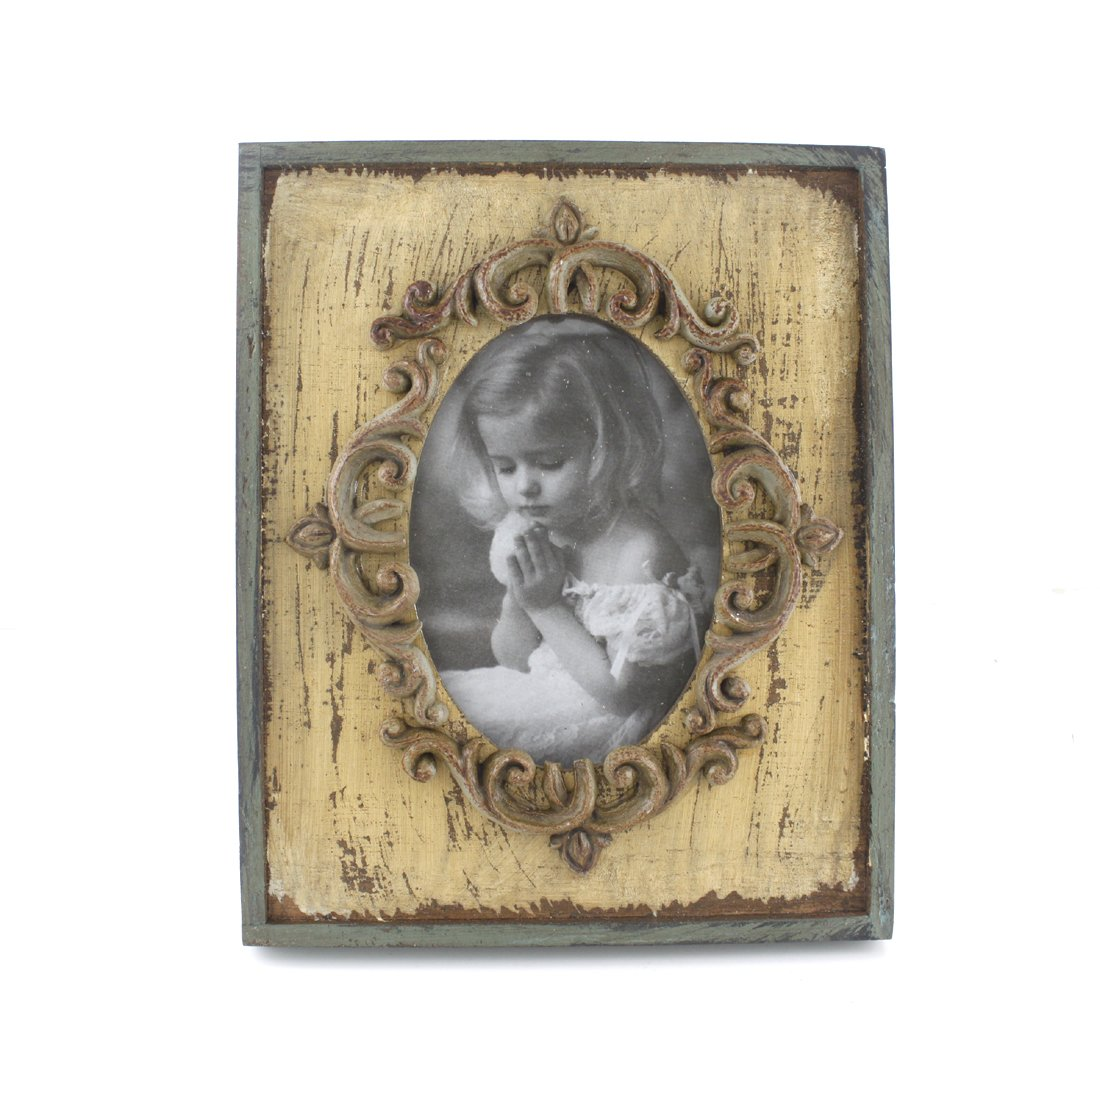 3x5-inch Vintage Rustic Feel Wooden Family Picture Photo Frame with Glass Front for Desk Top (Beige) 2